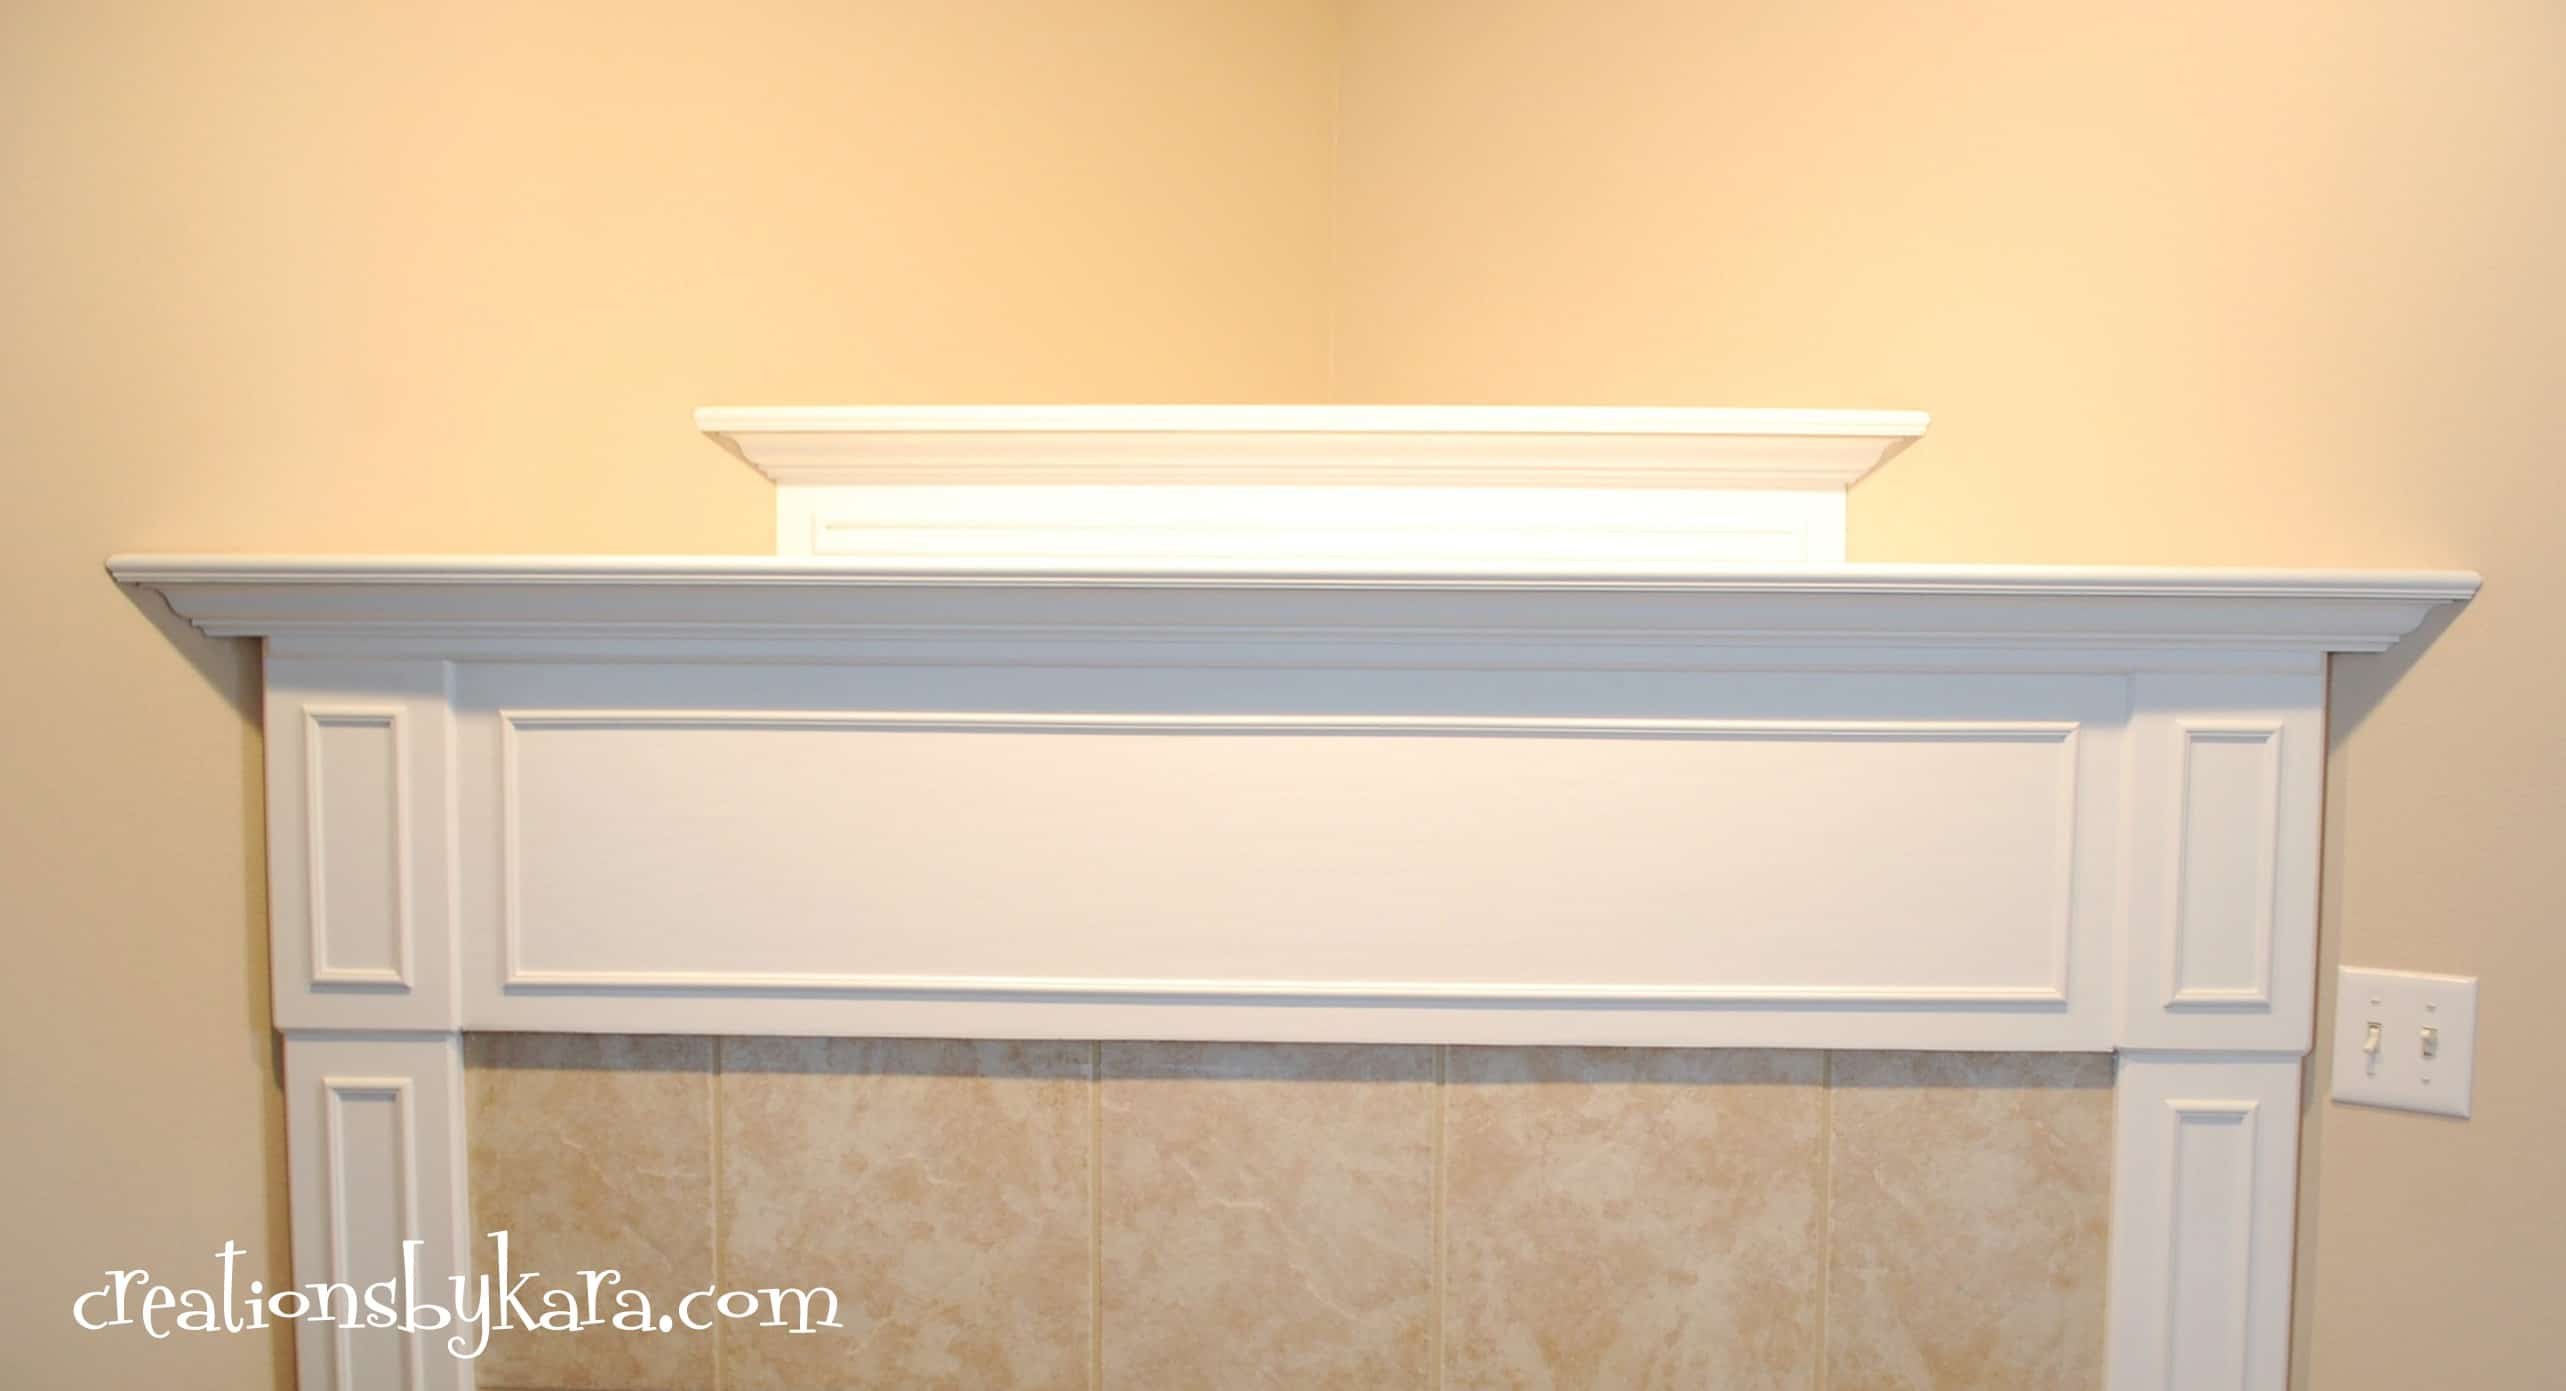 Diy Mantels For Fireplaces Diy Fireplace Mantels Image Collections Home Fixtures Decoration